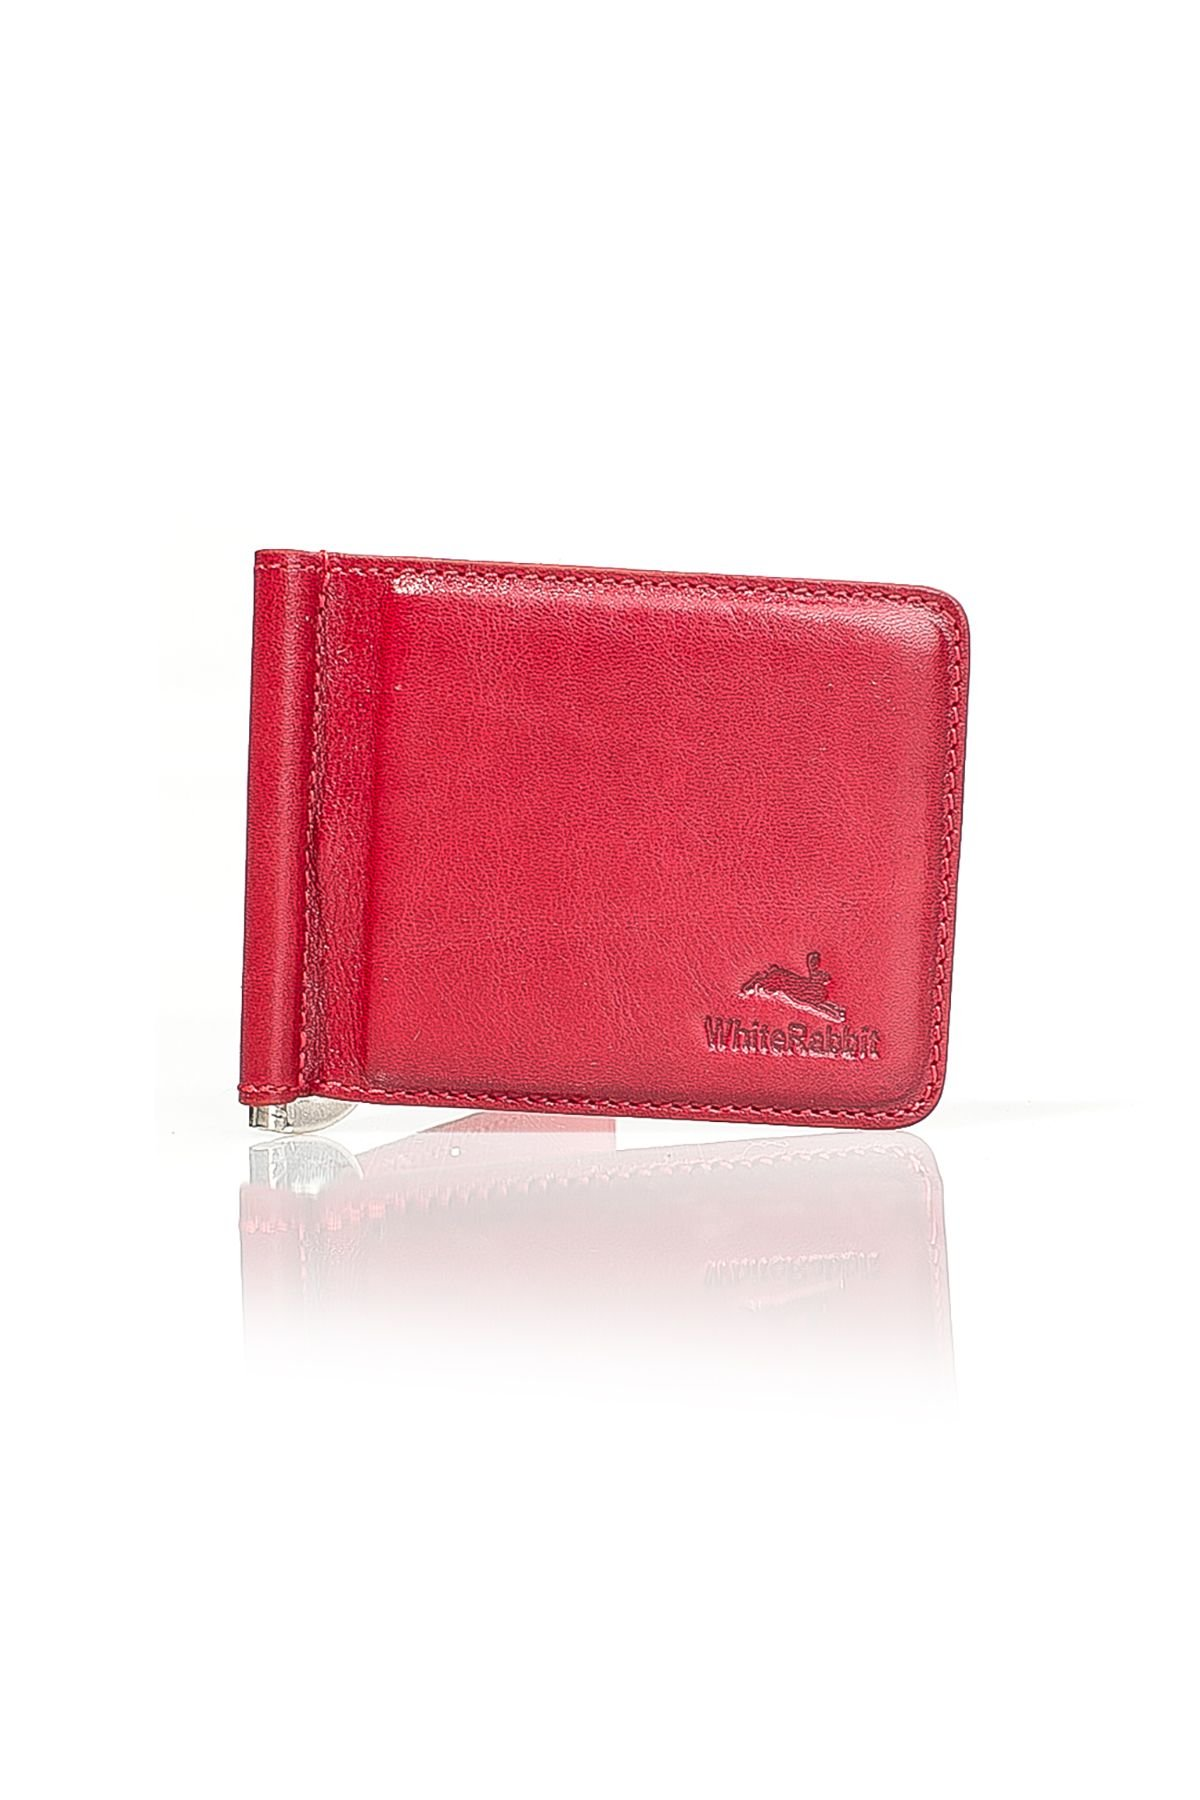 White Rabbit Leather Money Clip Red